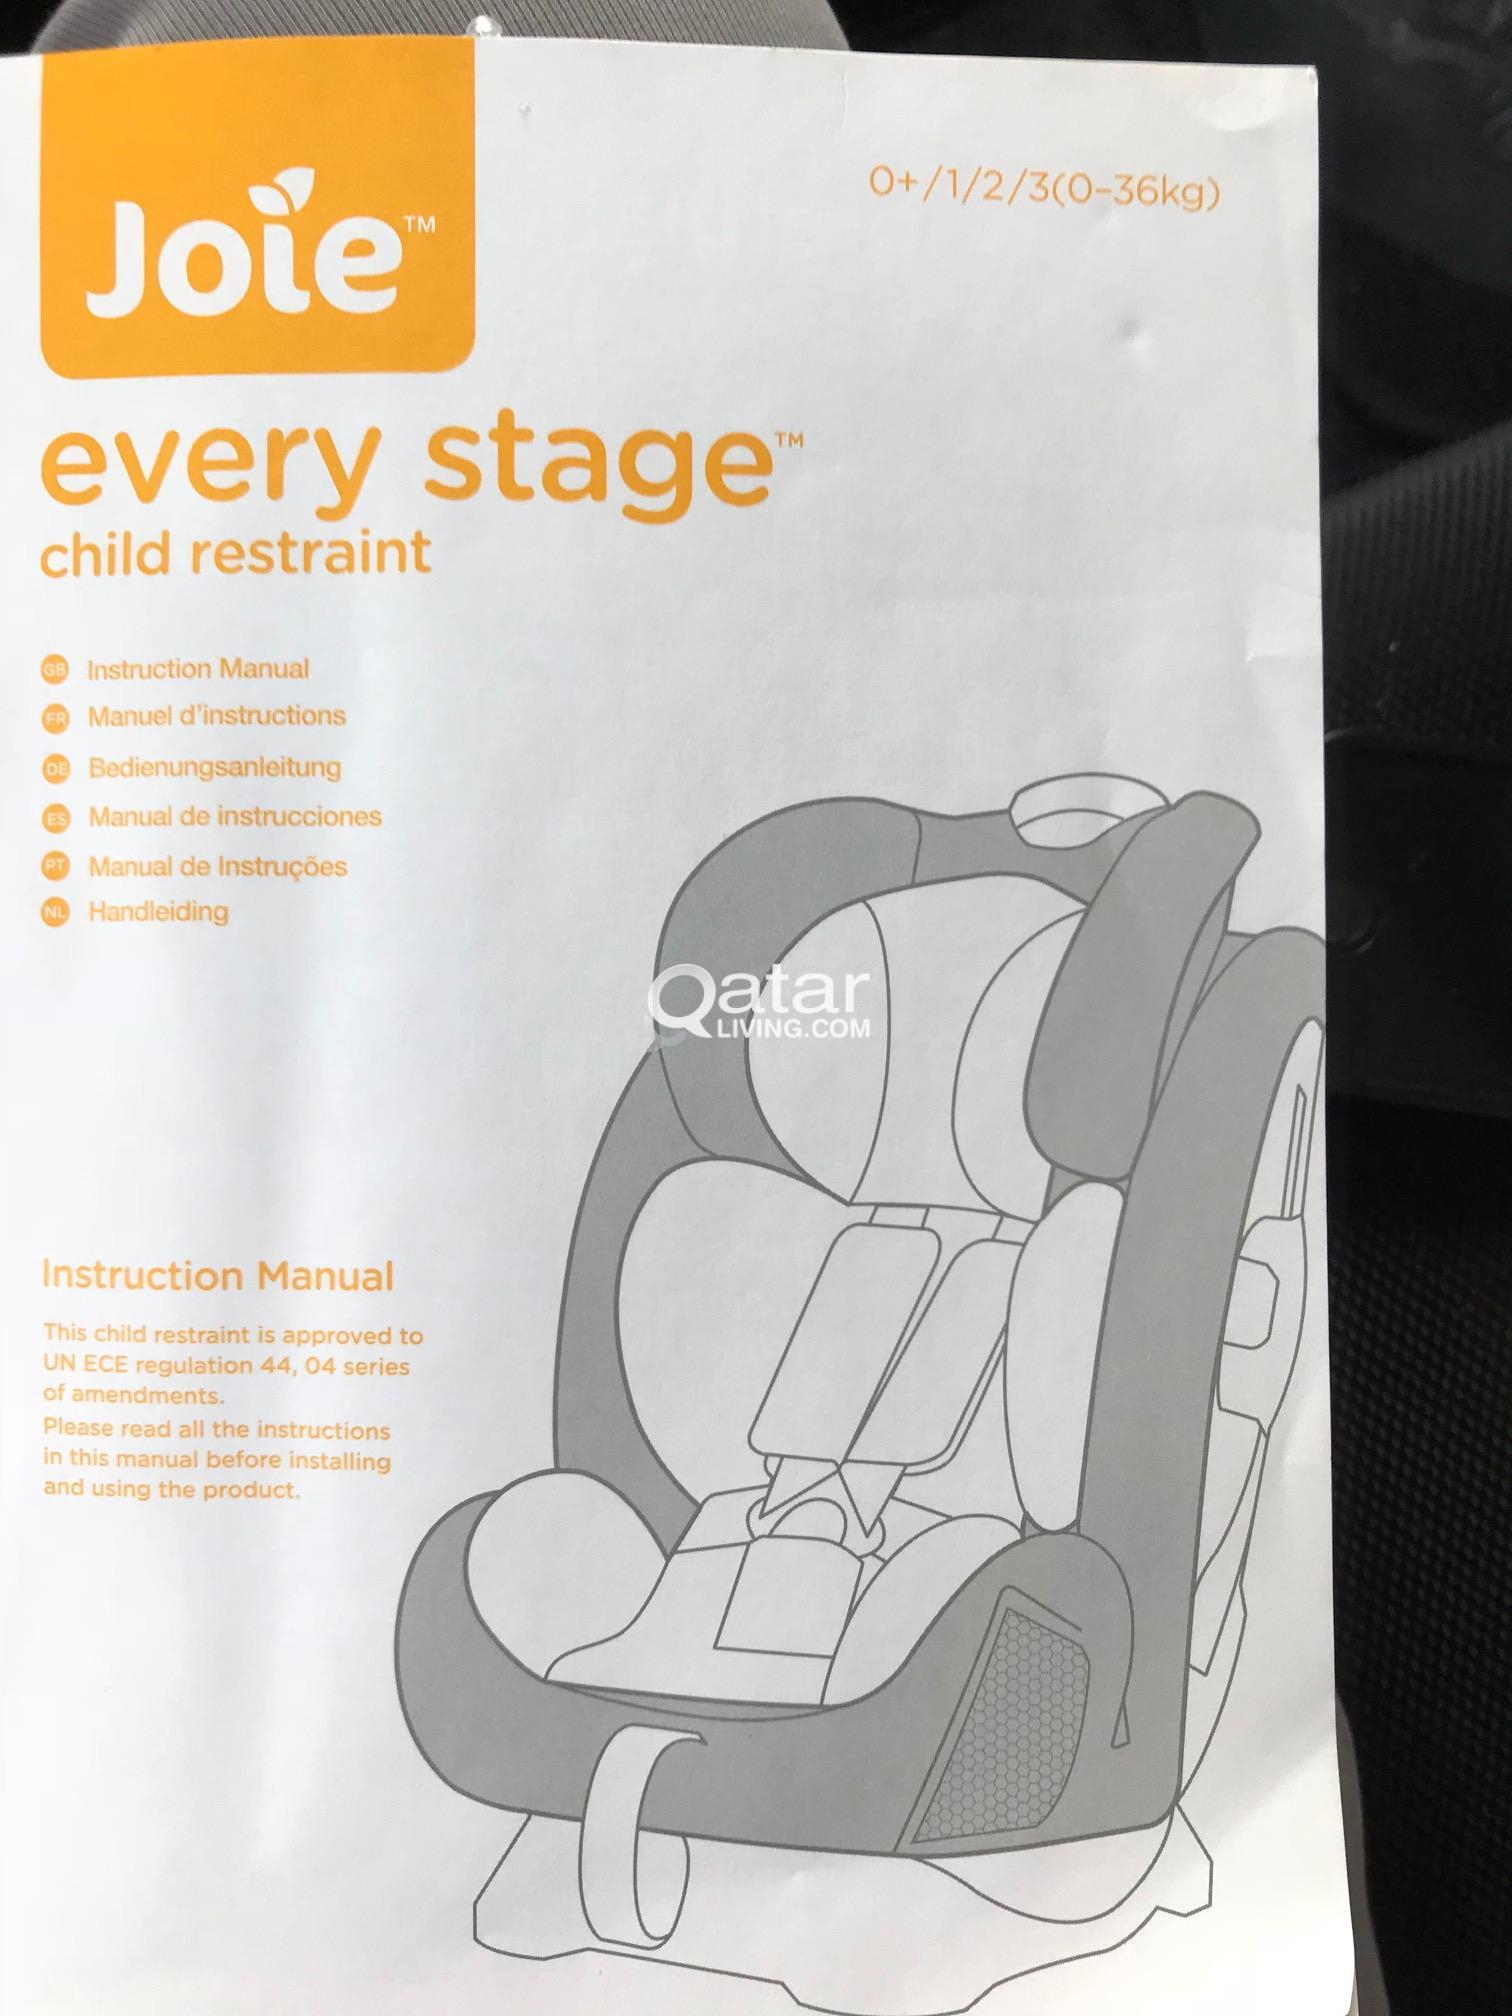 Joie Every Stage Car Seat Qatar Living